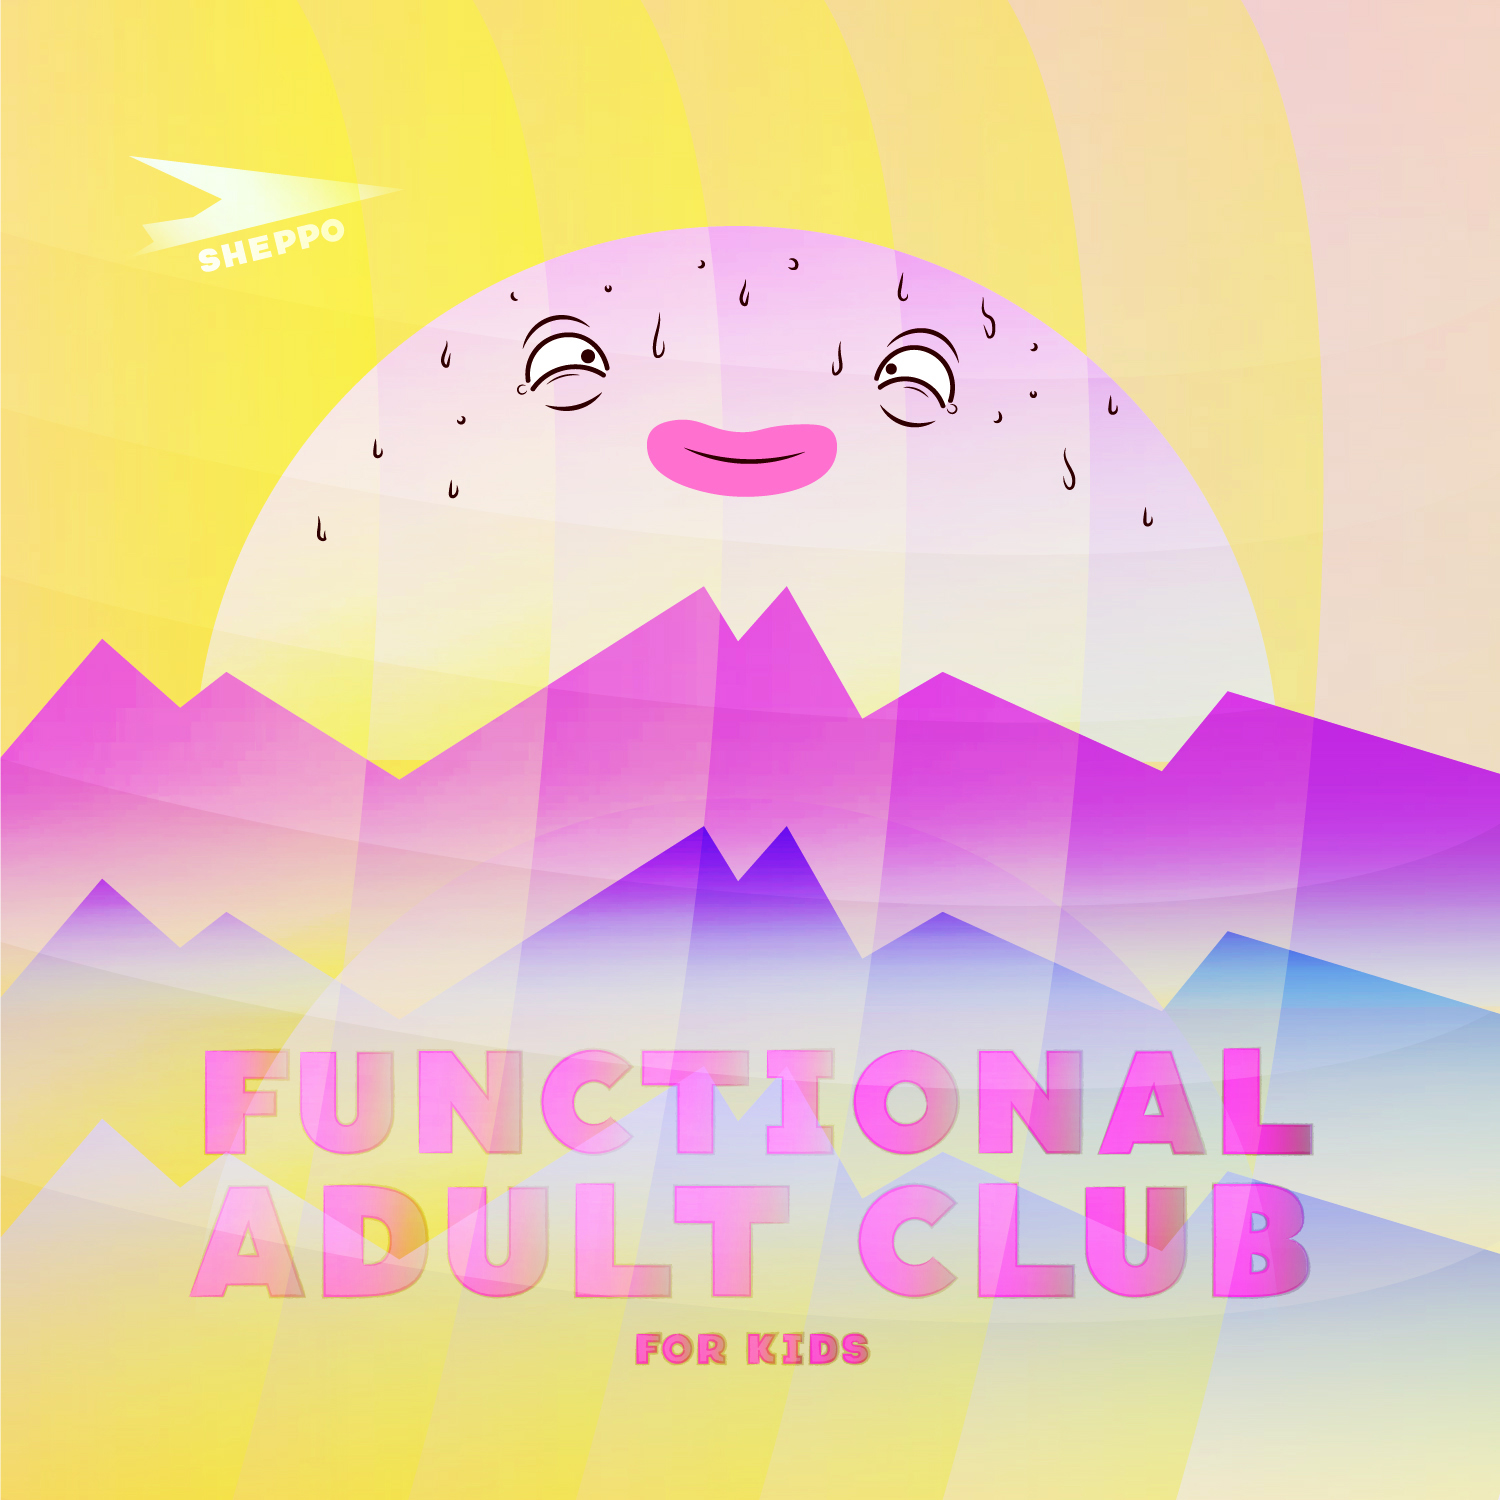 Functional-Adult-Club-for-Kids-cover.jpg